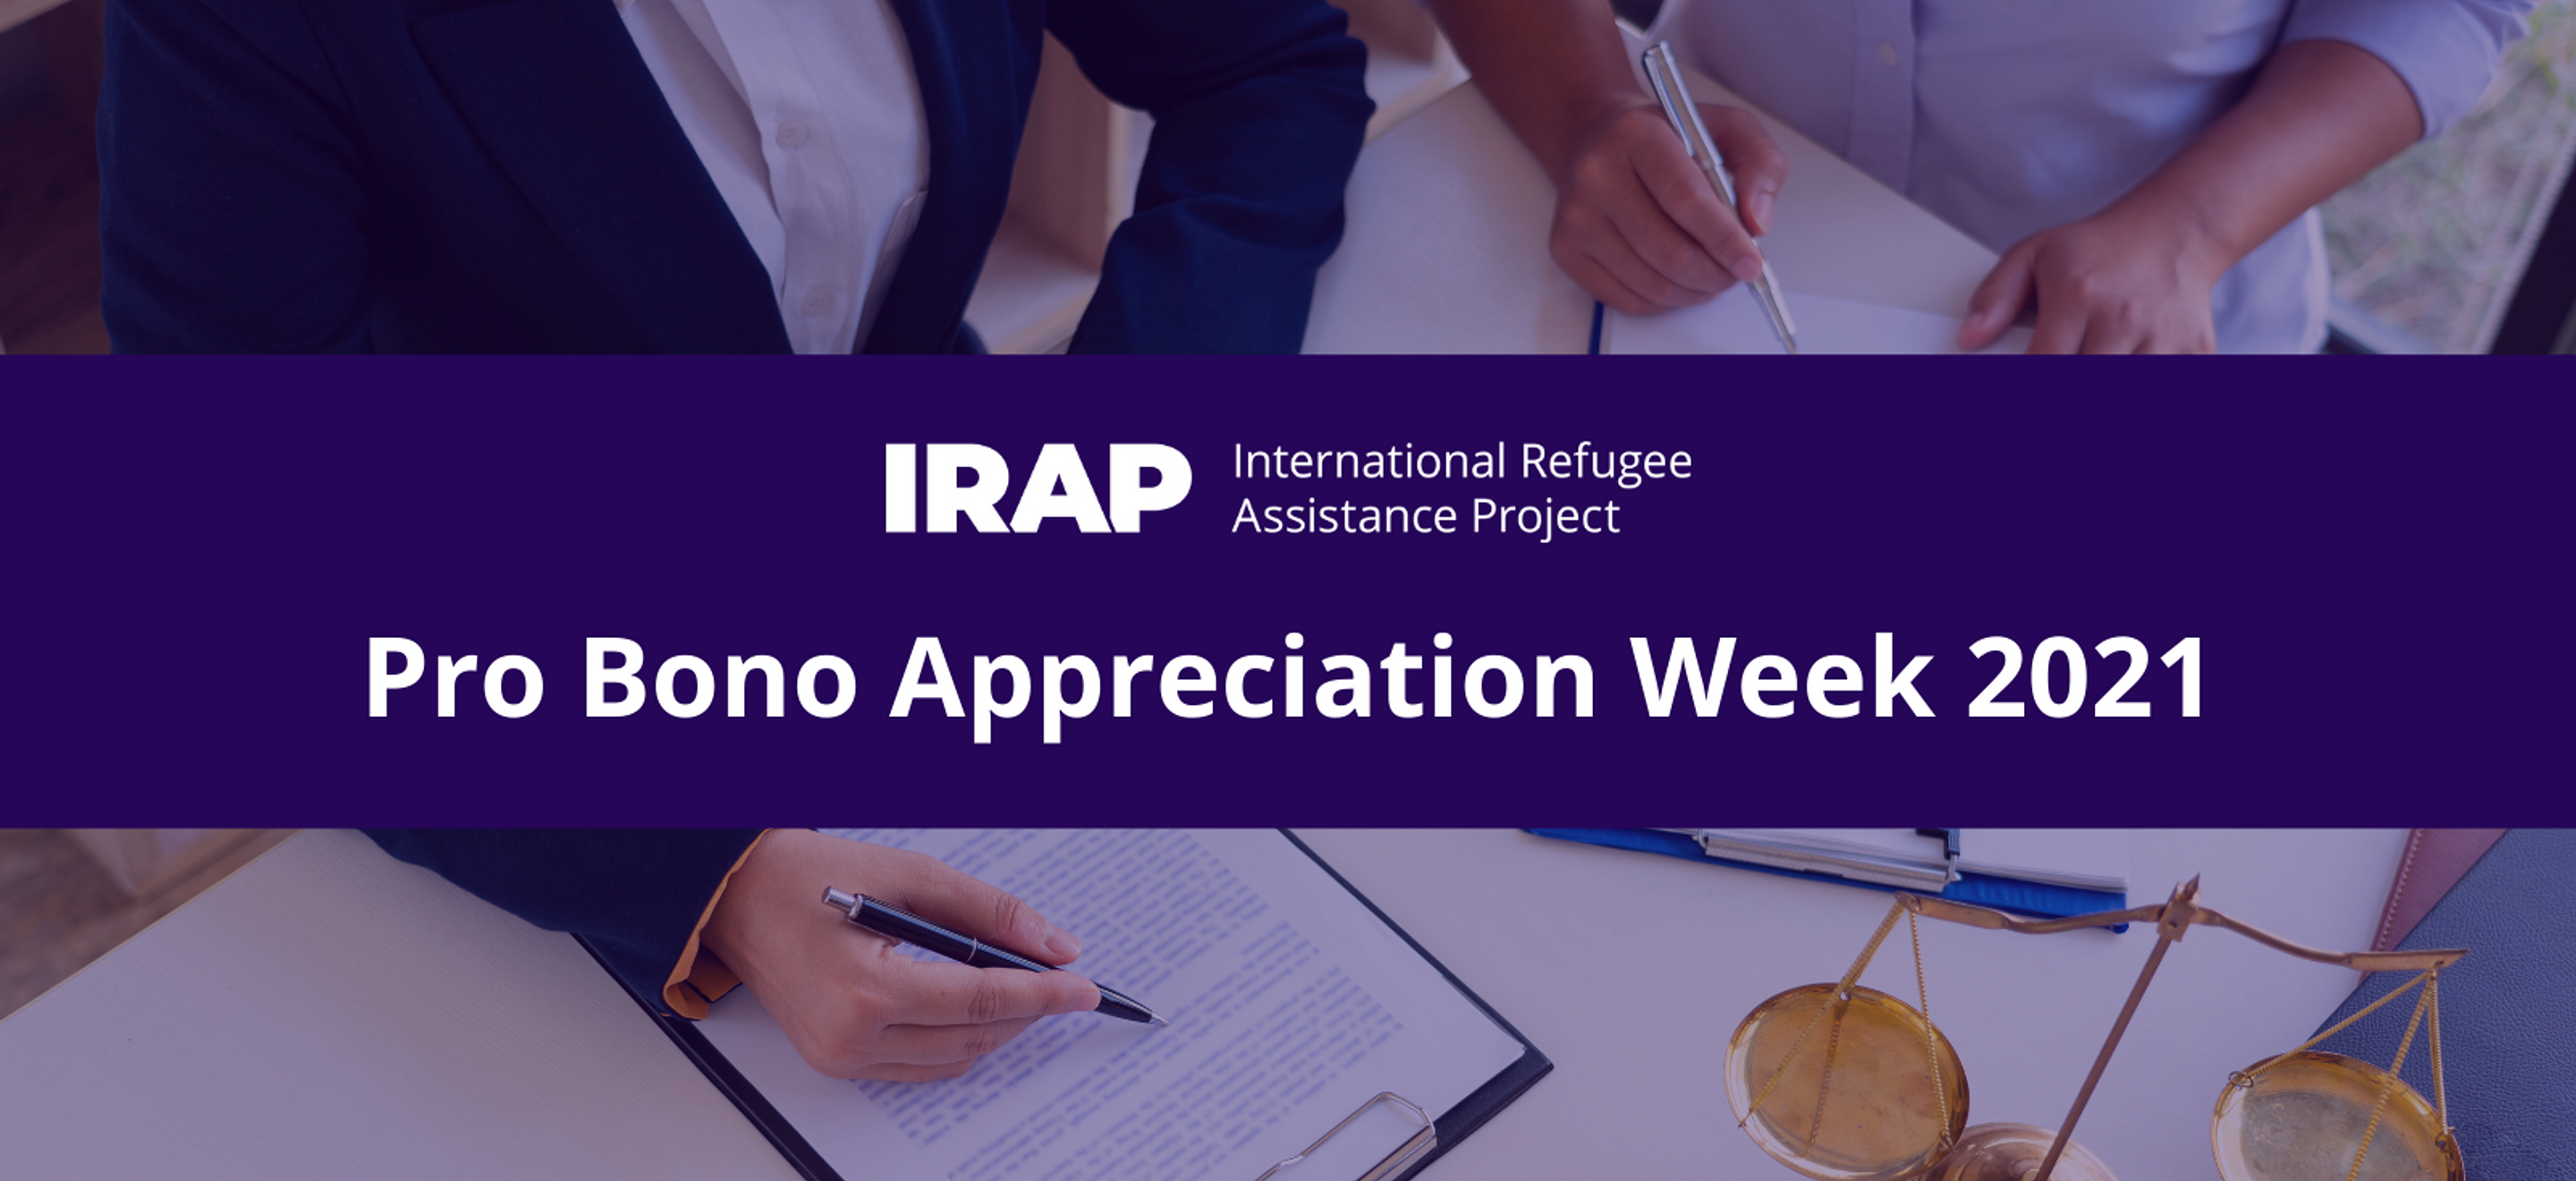 A purple banner with the IRAP logo and the text Pro Bono Appreciation Week 2021 is overlaid above an image of two attorneys' hands working side by side at a table. Legal forms and a gold scale of justice is visible.